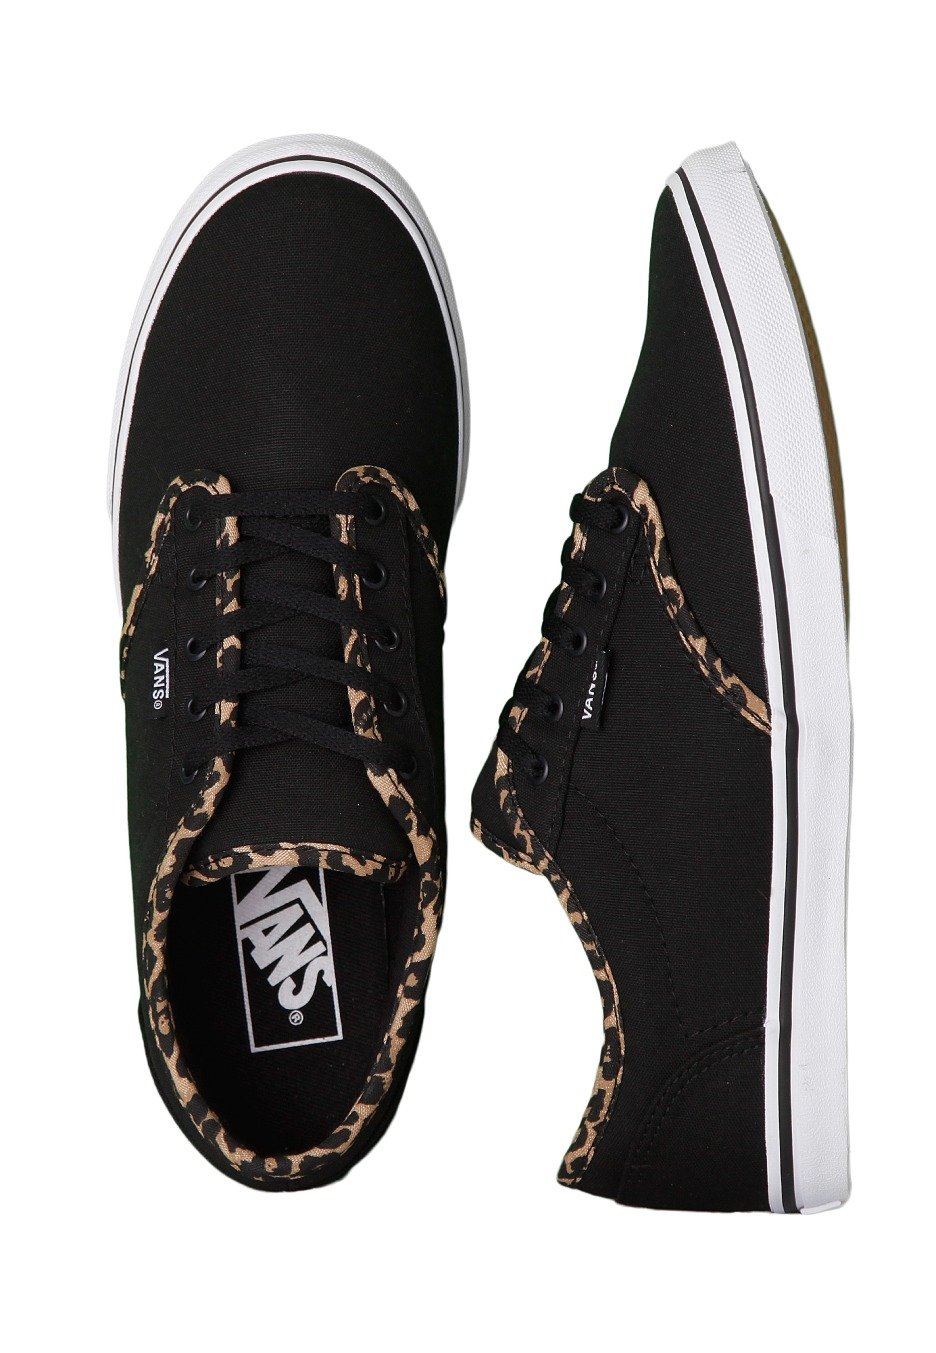 93c3c13e7a Vans - Atwood Low Cheetah Black White - Girl Shoes - Impericon.com UK